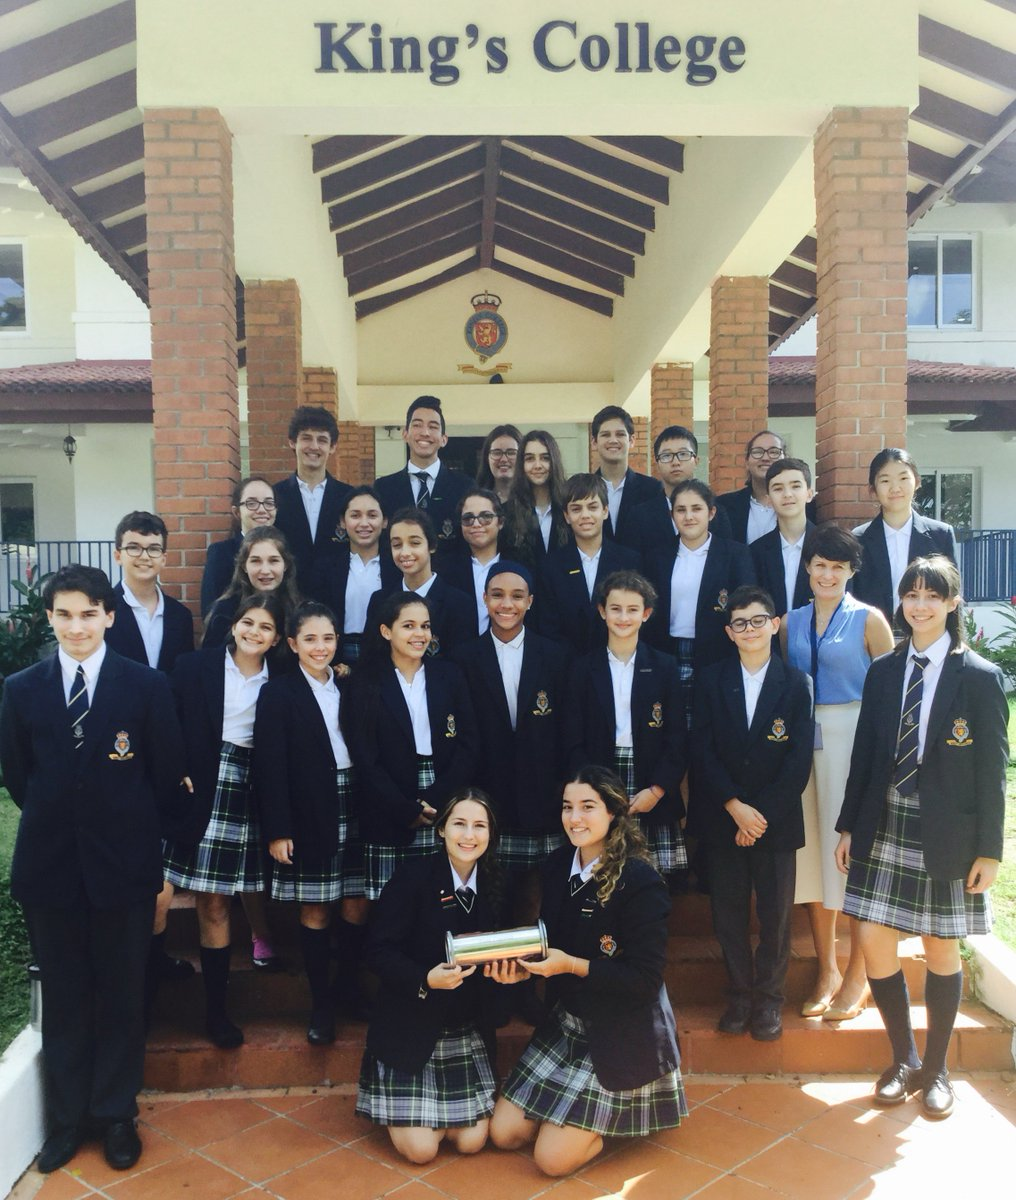 King's College Panama on Twitter: